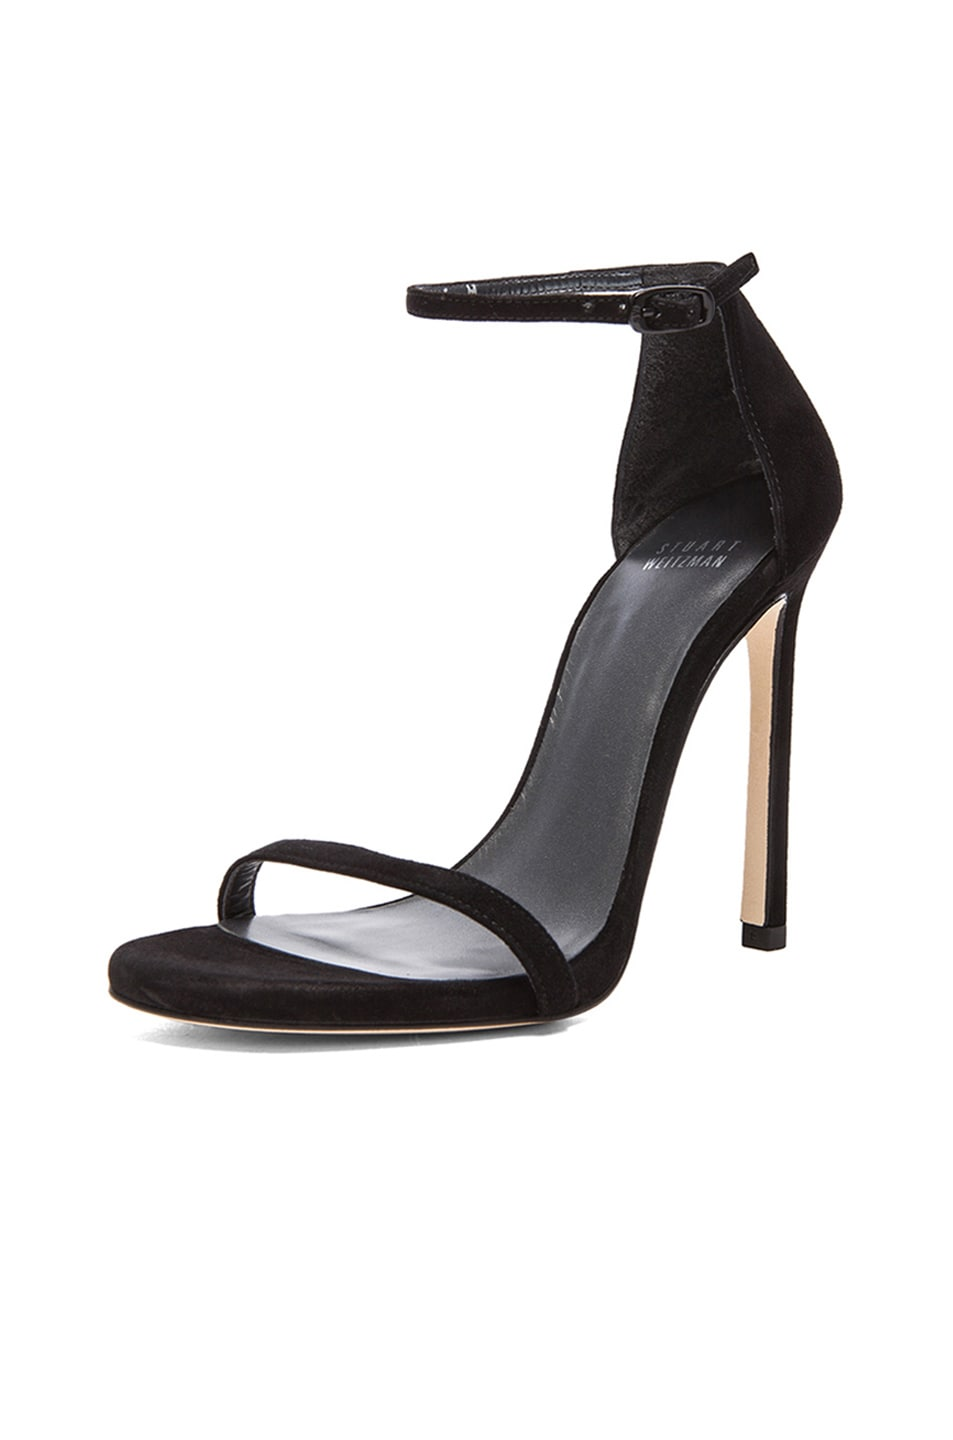 Image 2 of Stuart Weitzman Suede Nudist Heels in Black Suede